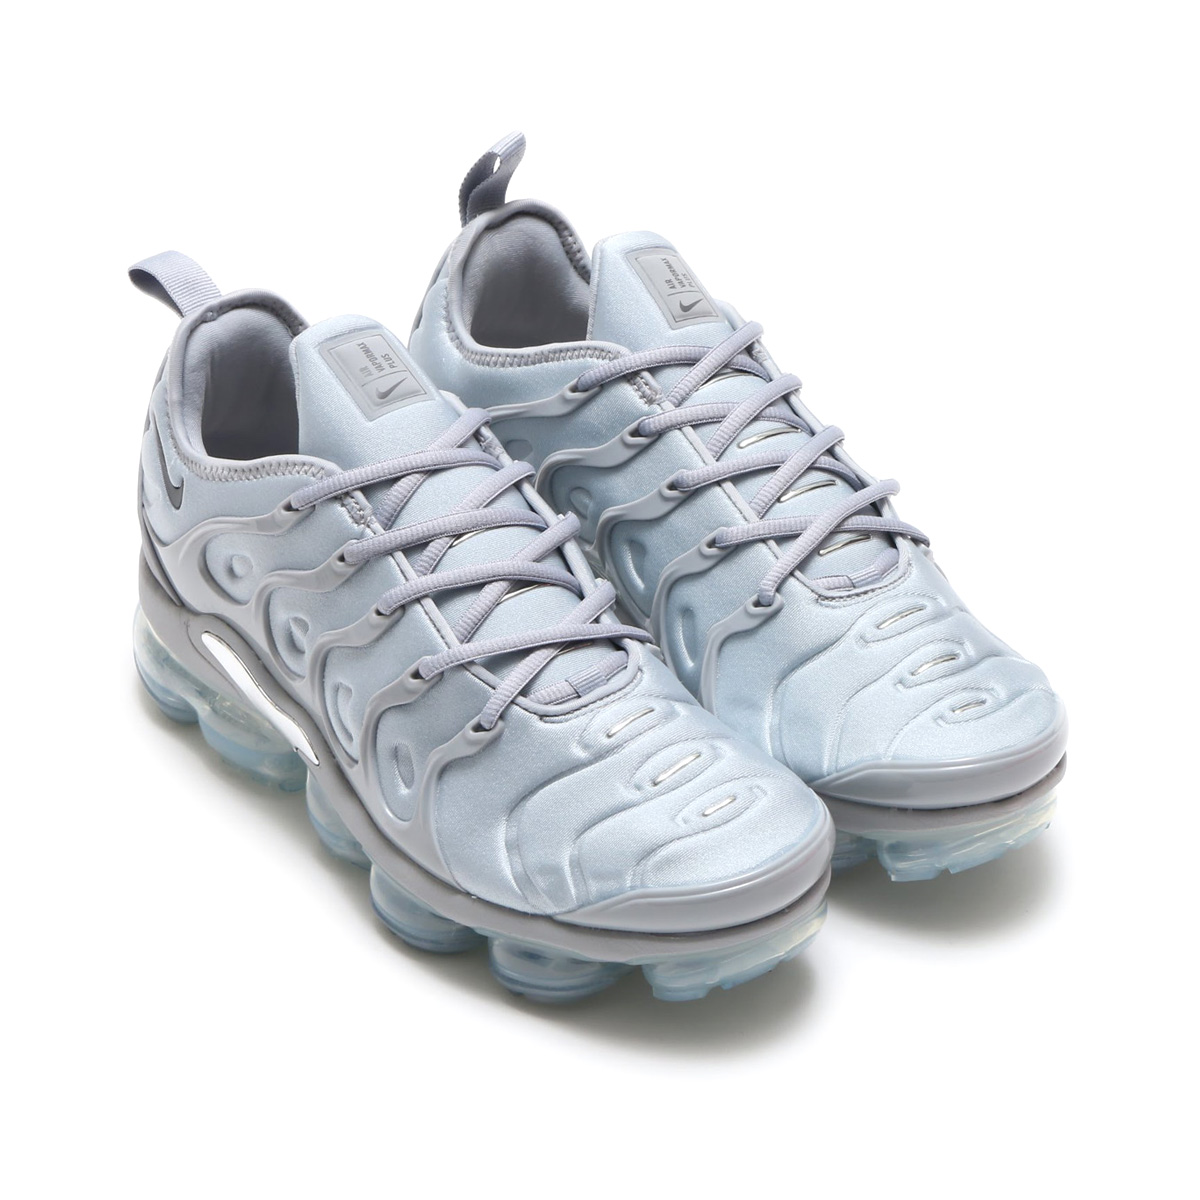 NIKE AIR VAPORMAX PLUS (Nike air vapor max plus) (WOLF GREY DARK GREY-METALLIC  SILVER)18SP-S 450a3f8bb